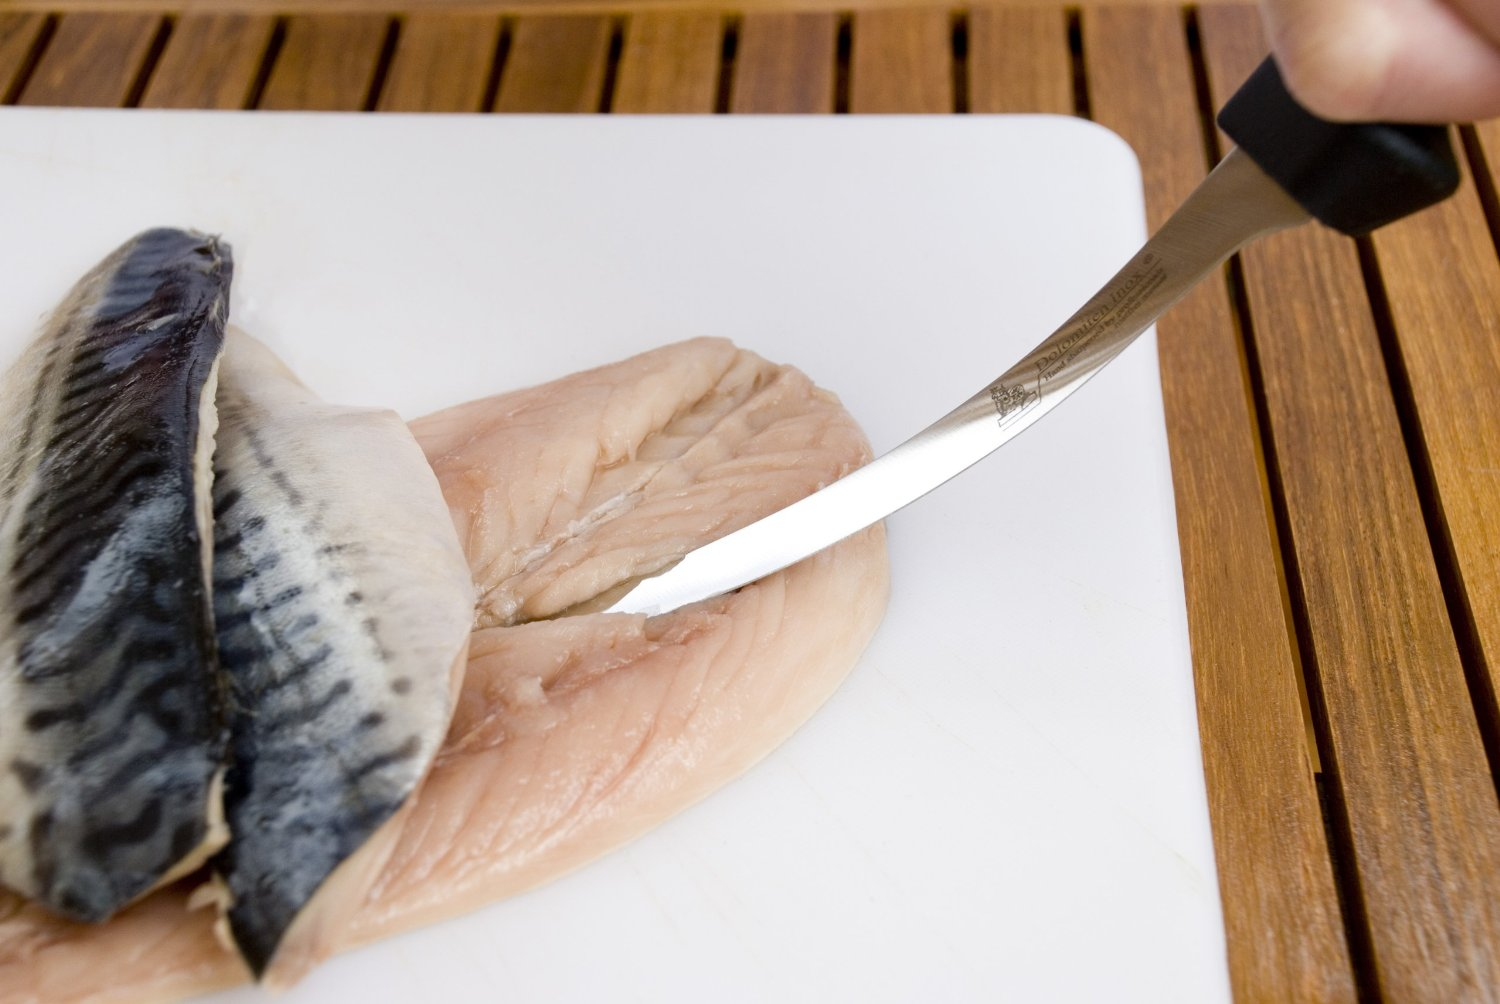 Best fish filleting knife for survival for Fish cleaning knife